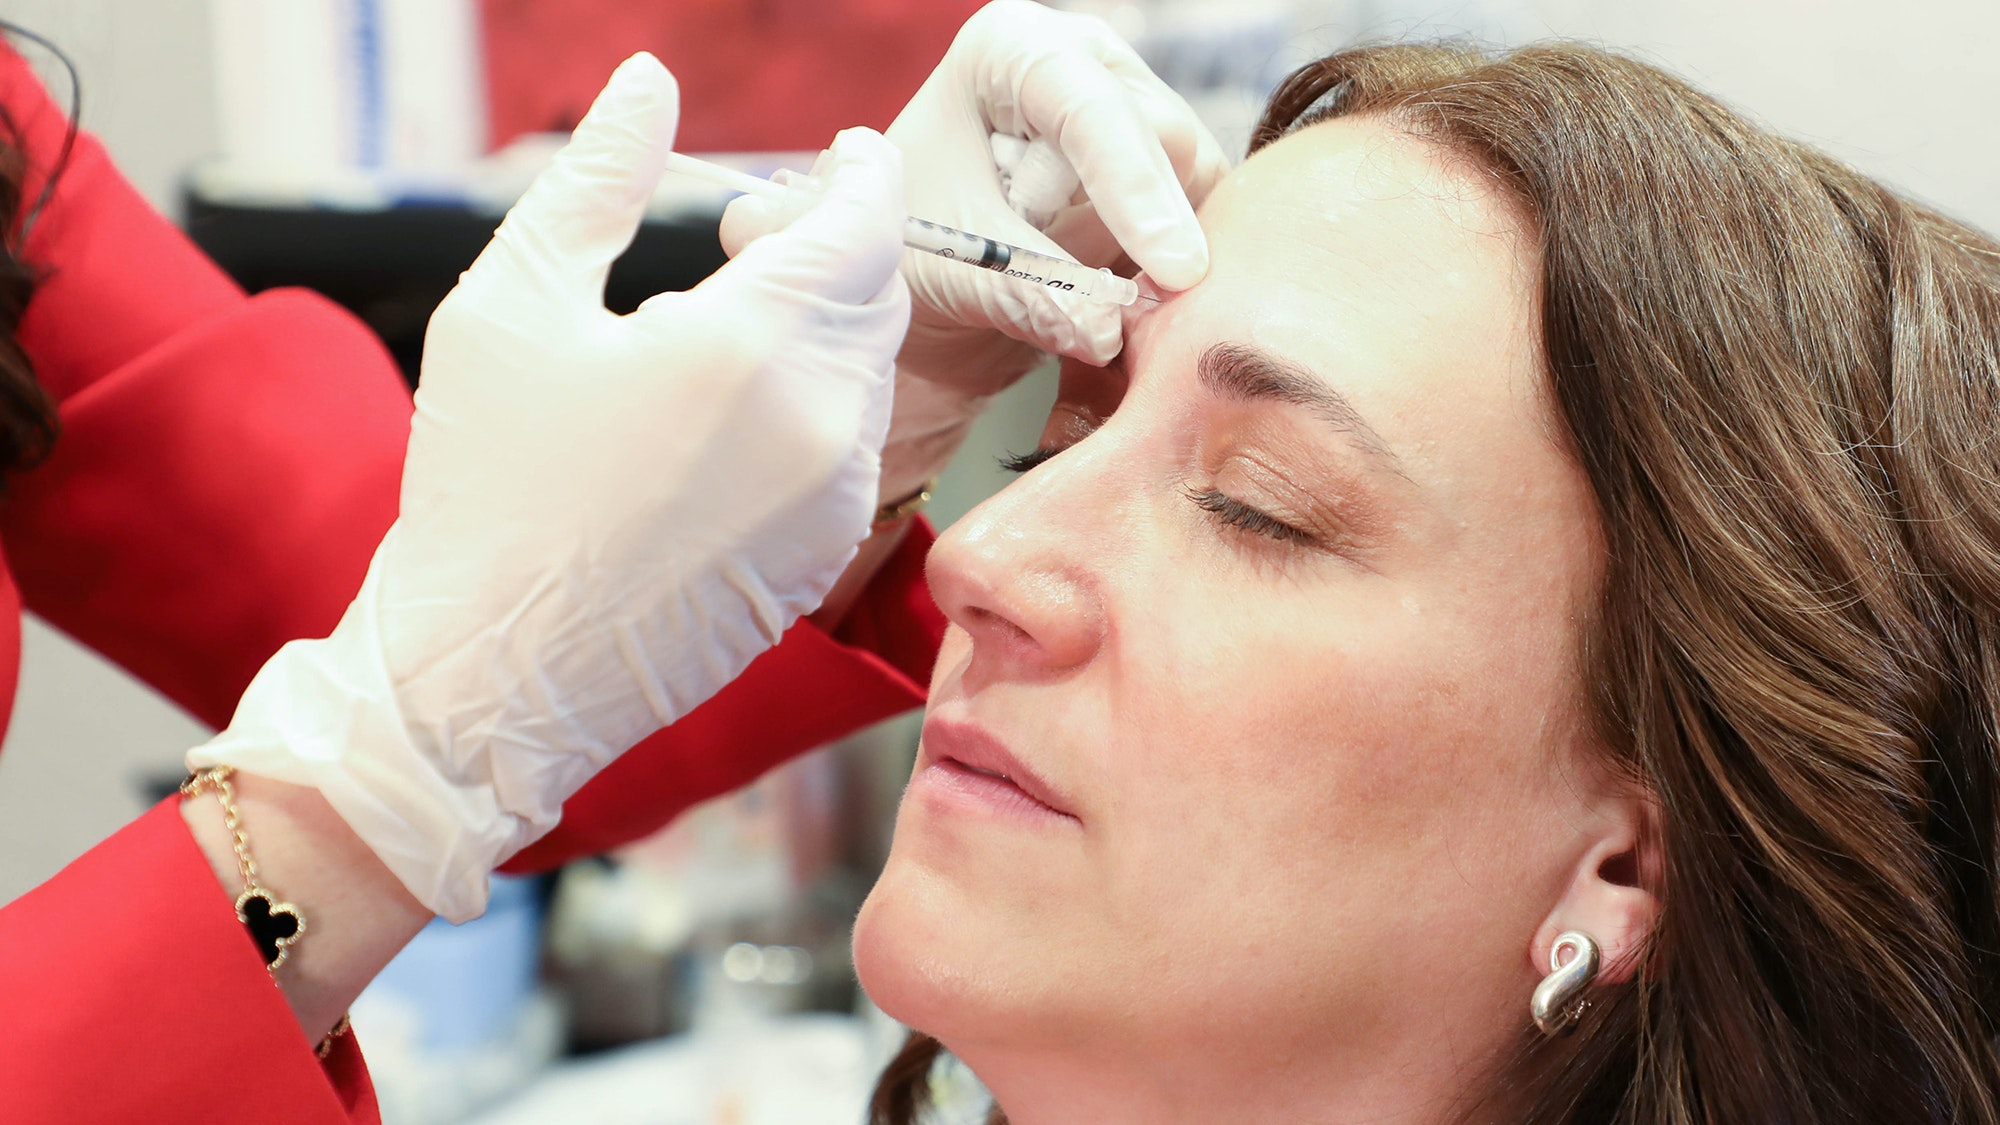 Under The Needle: One 45-Year-Old Mom Tries Injectable Wrinkle Reducers For the First Time